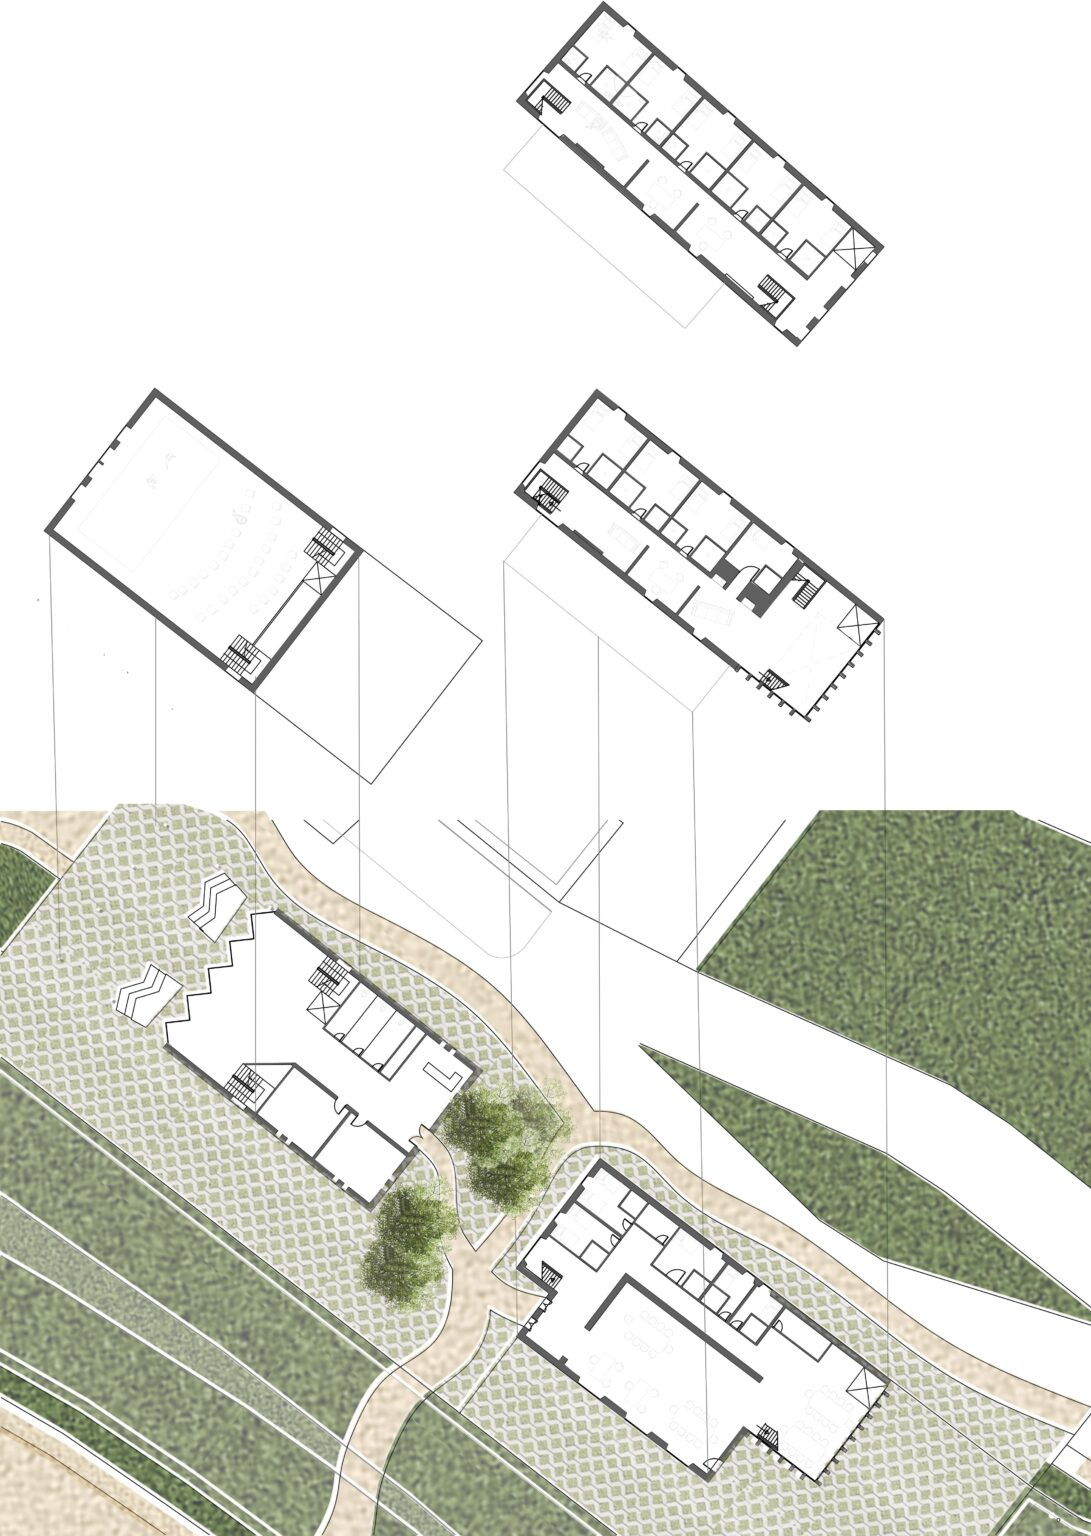 To show layout of buildings